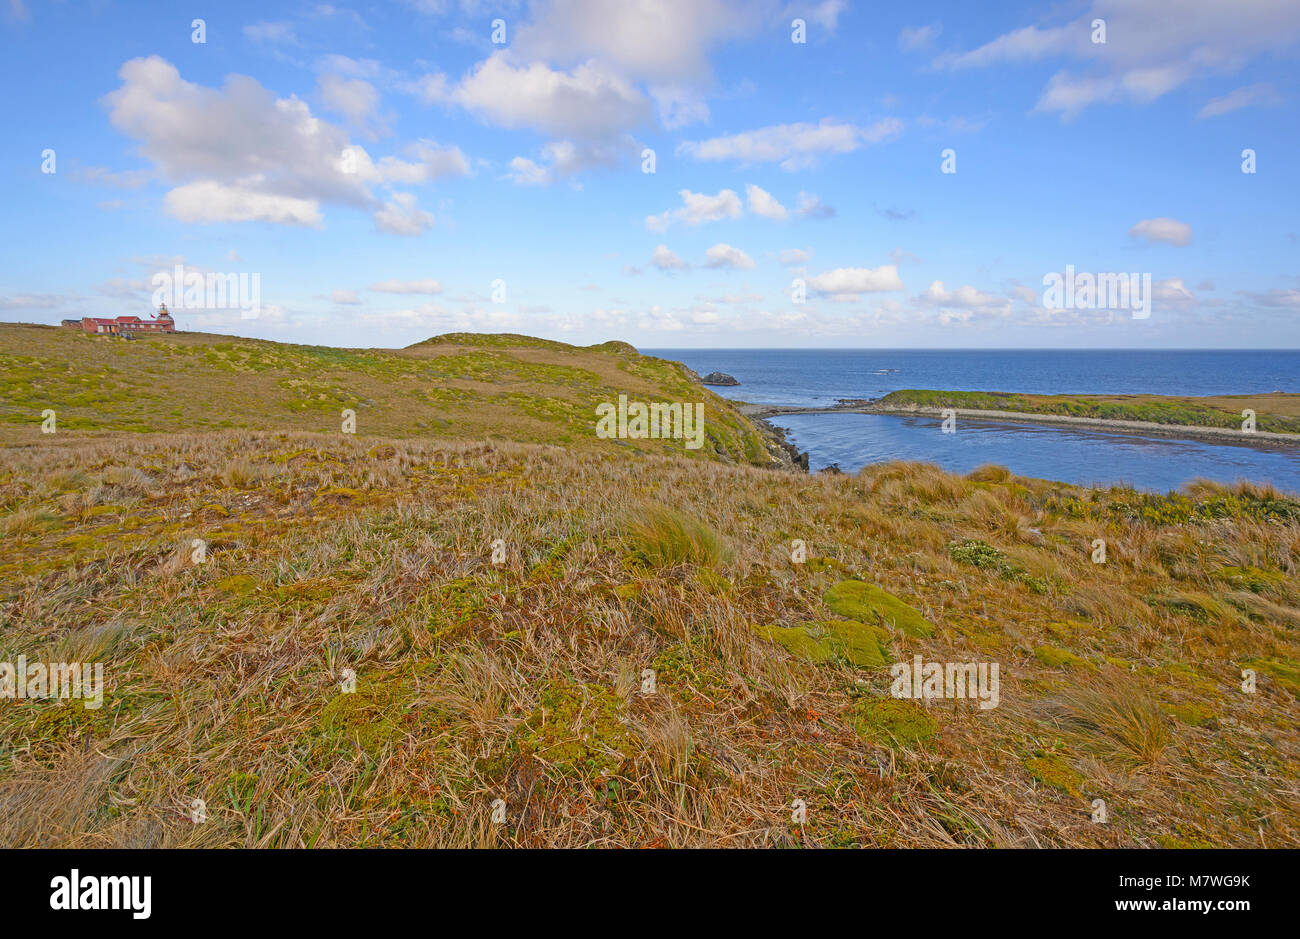 Lighthouse and Grassland at the end of the World on Cape Horn in Chile - Stock Image